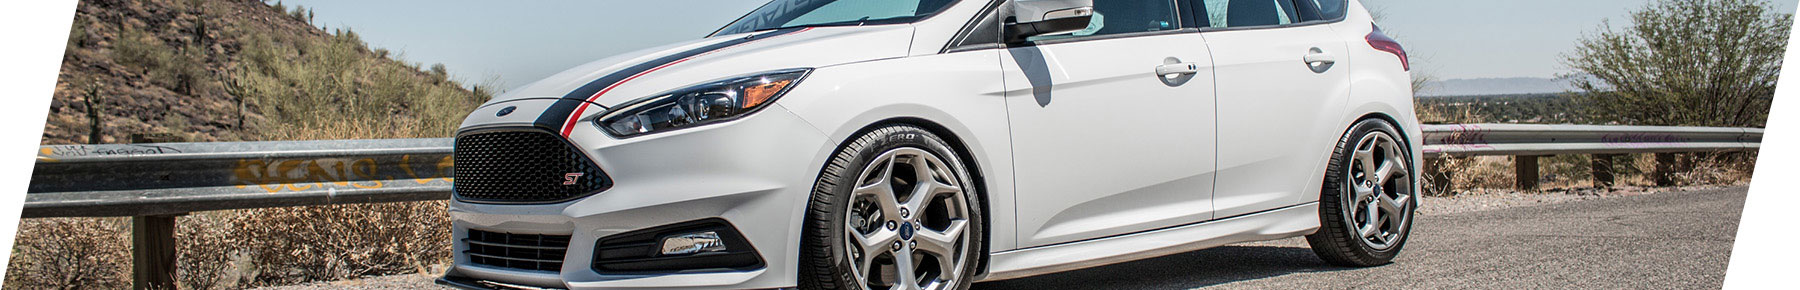 2013-2016 Focus ST Performance Parts & Accessories